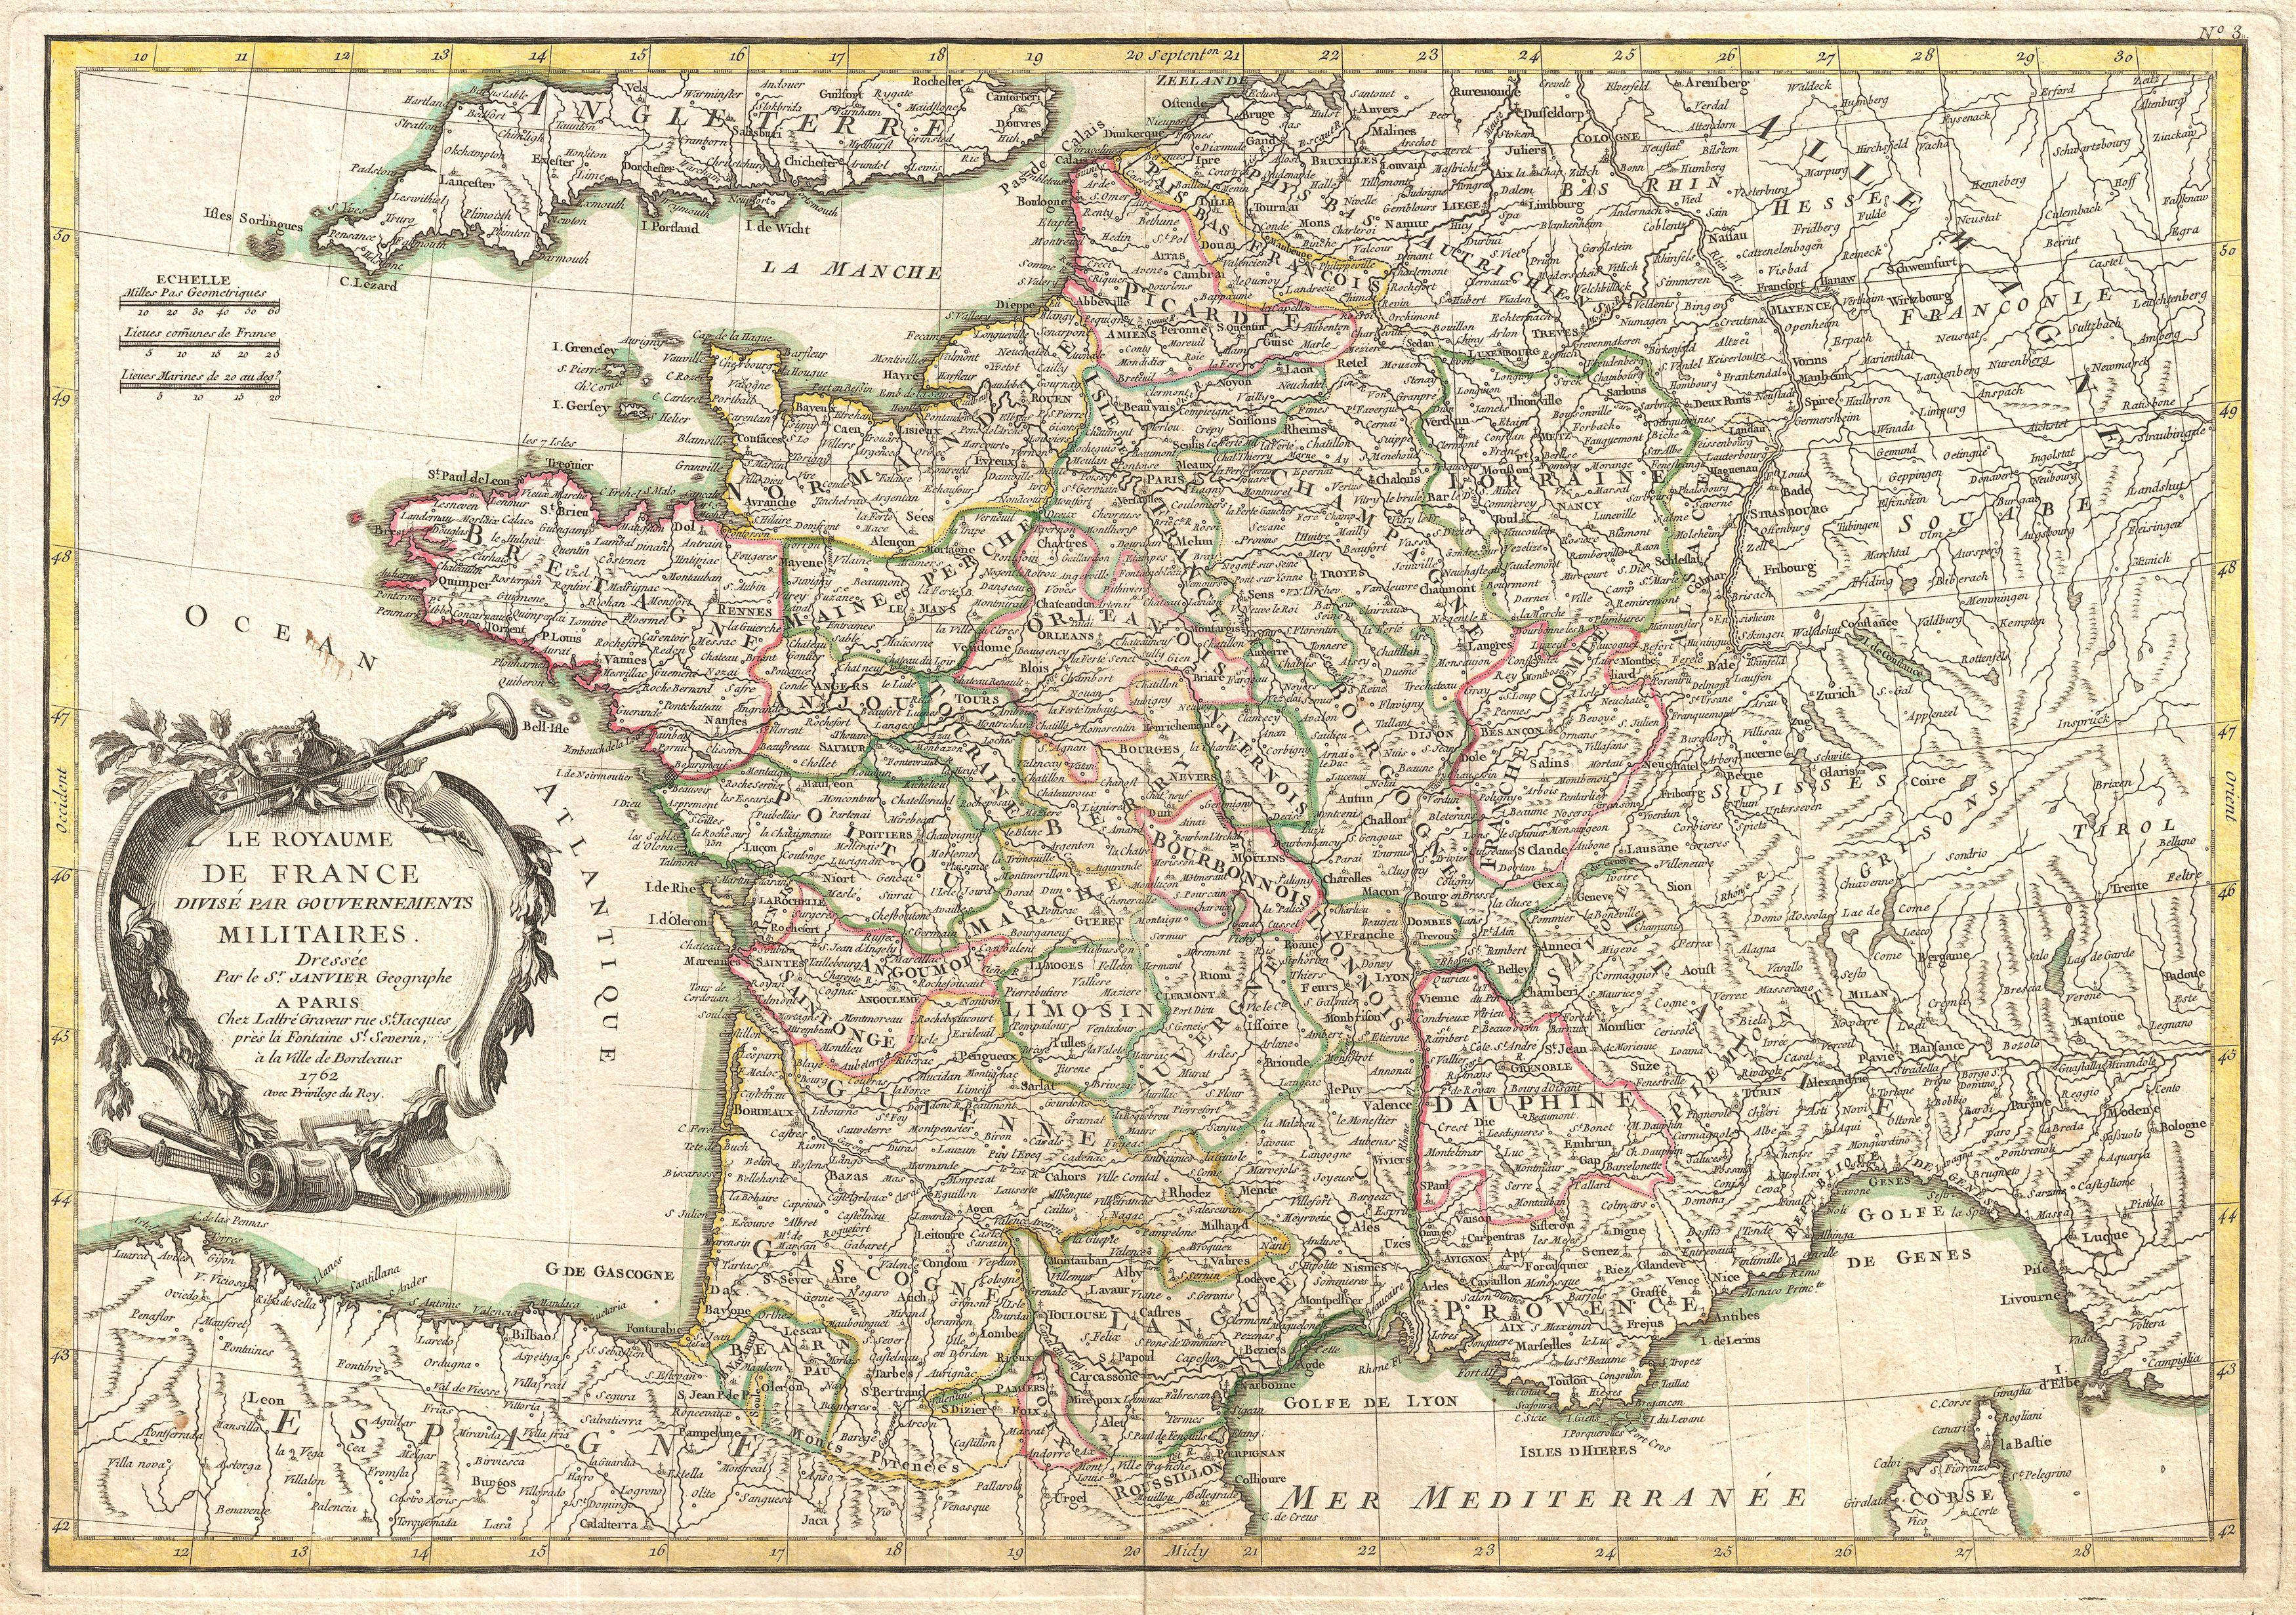 Old Map Of France.File 1762 Janvier Map Of France Geographicus Francemil Janvier